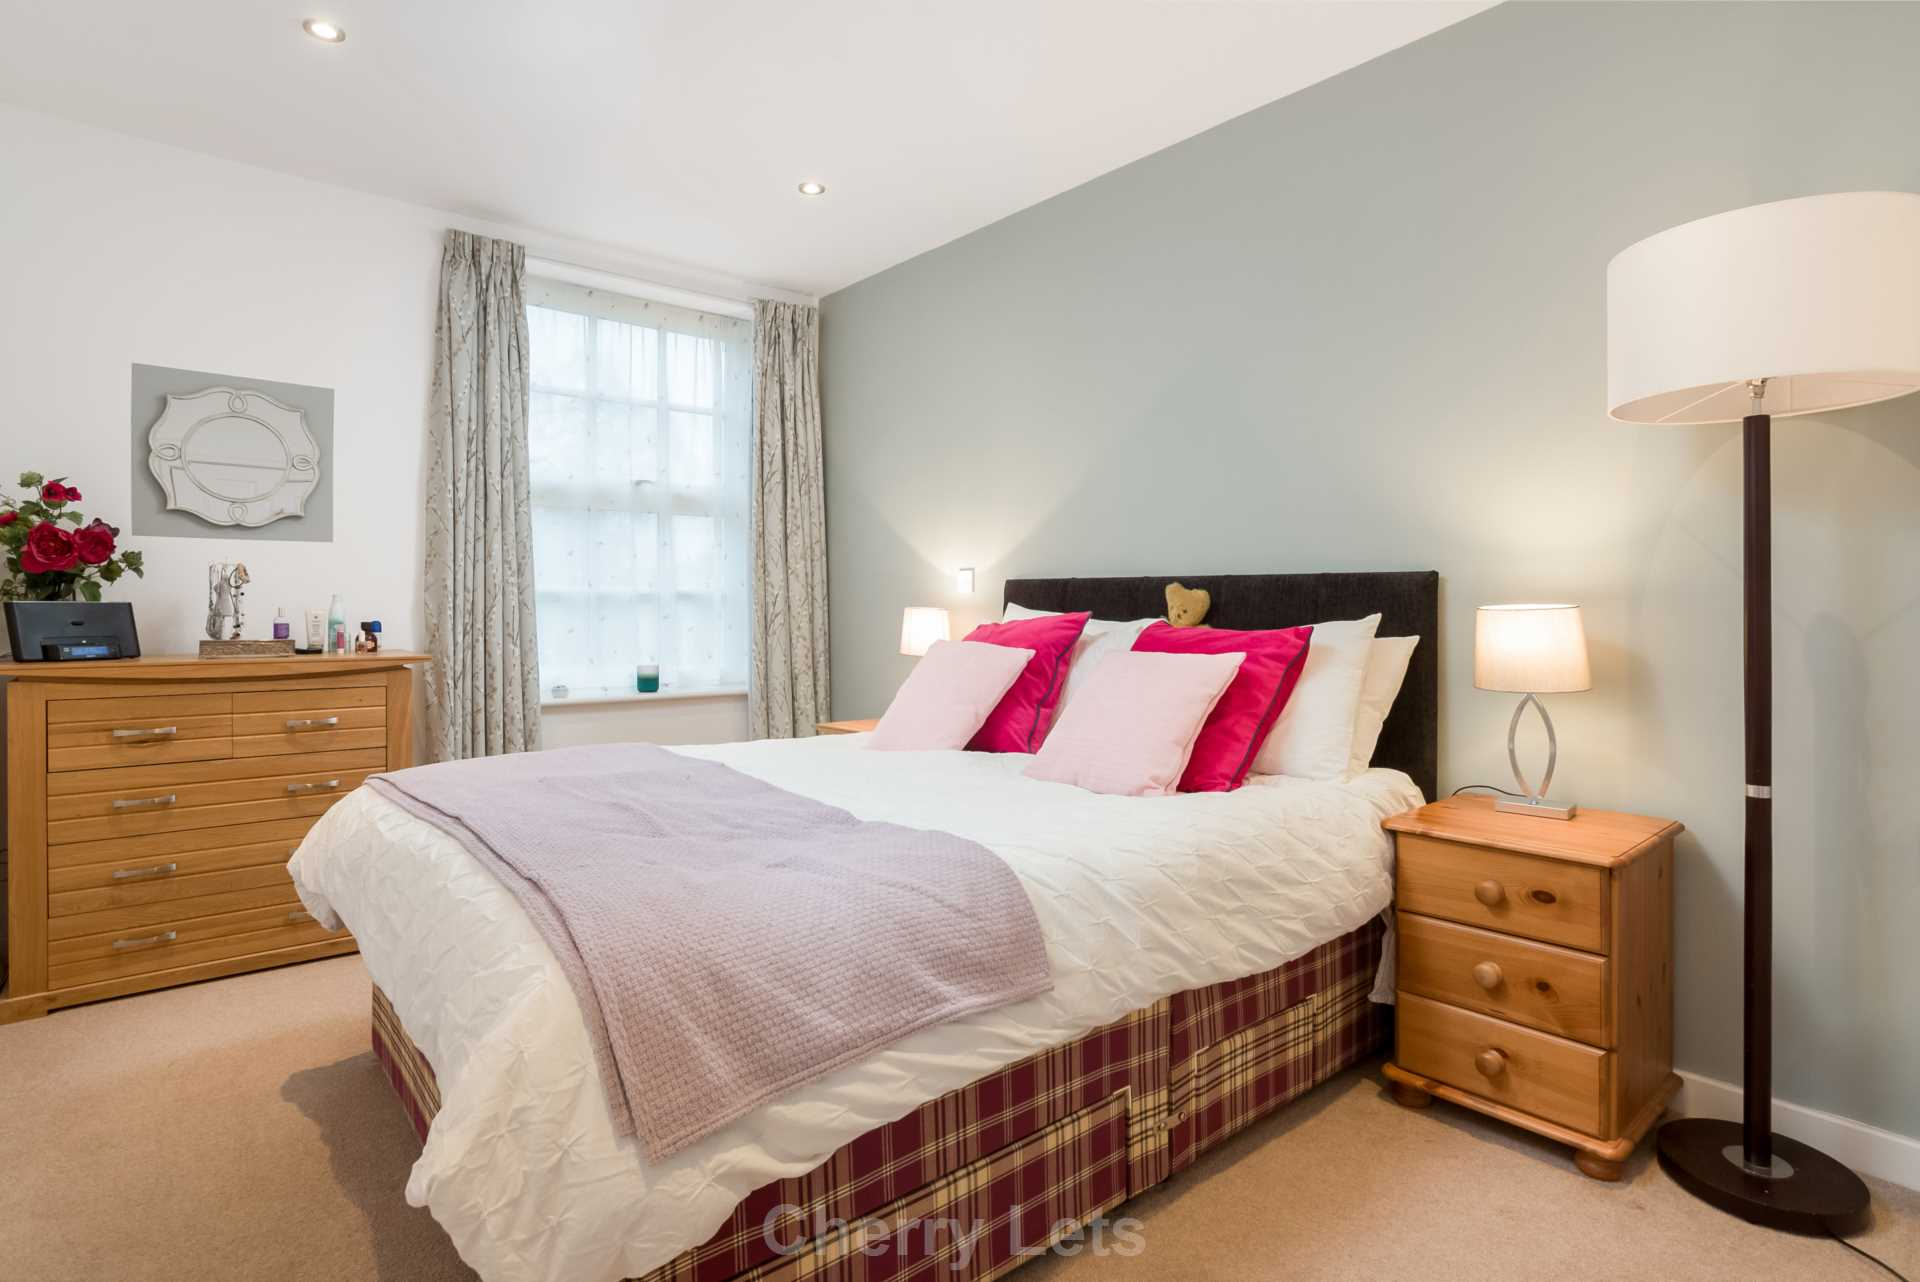 2 bed apartment to rent in Astrop Grange, Kings Sutton, OX17  - Property Image 6